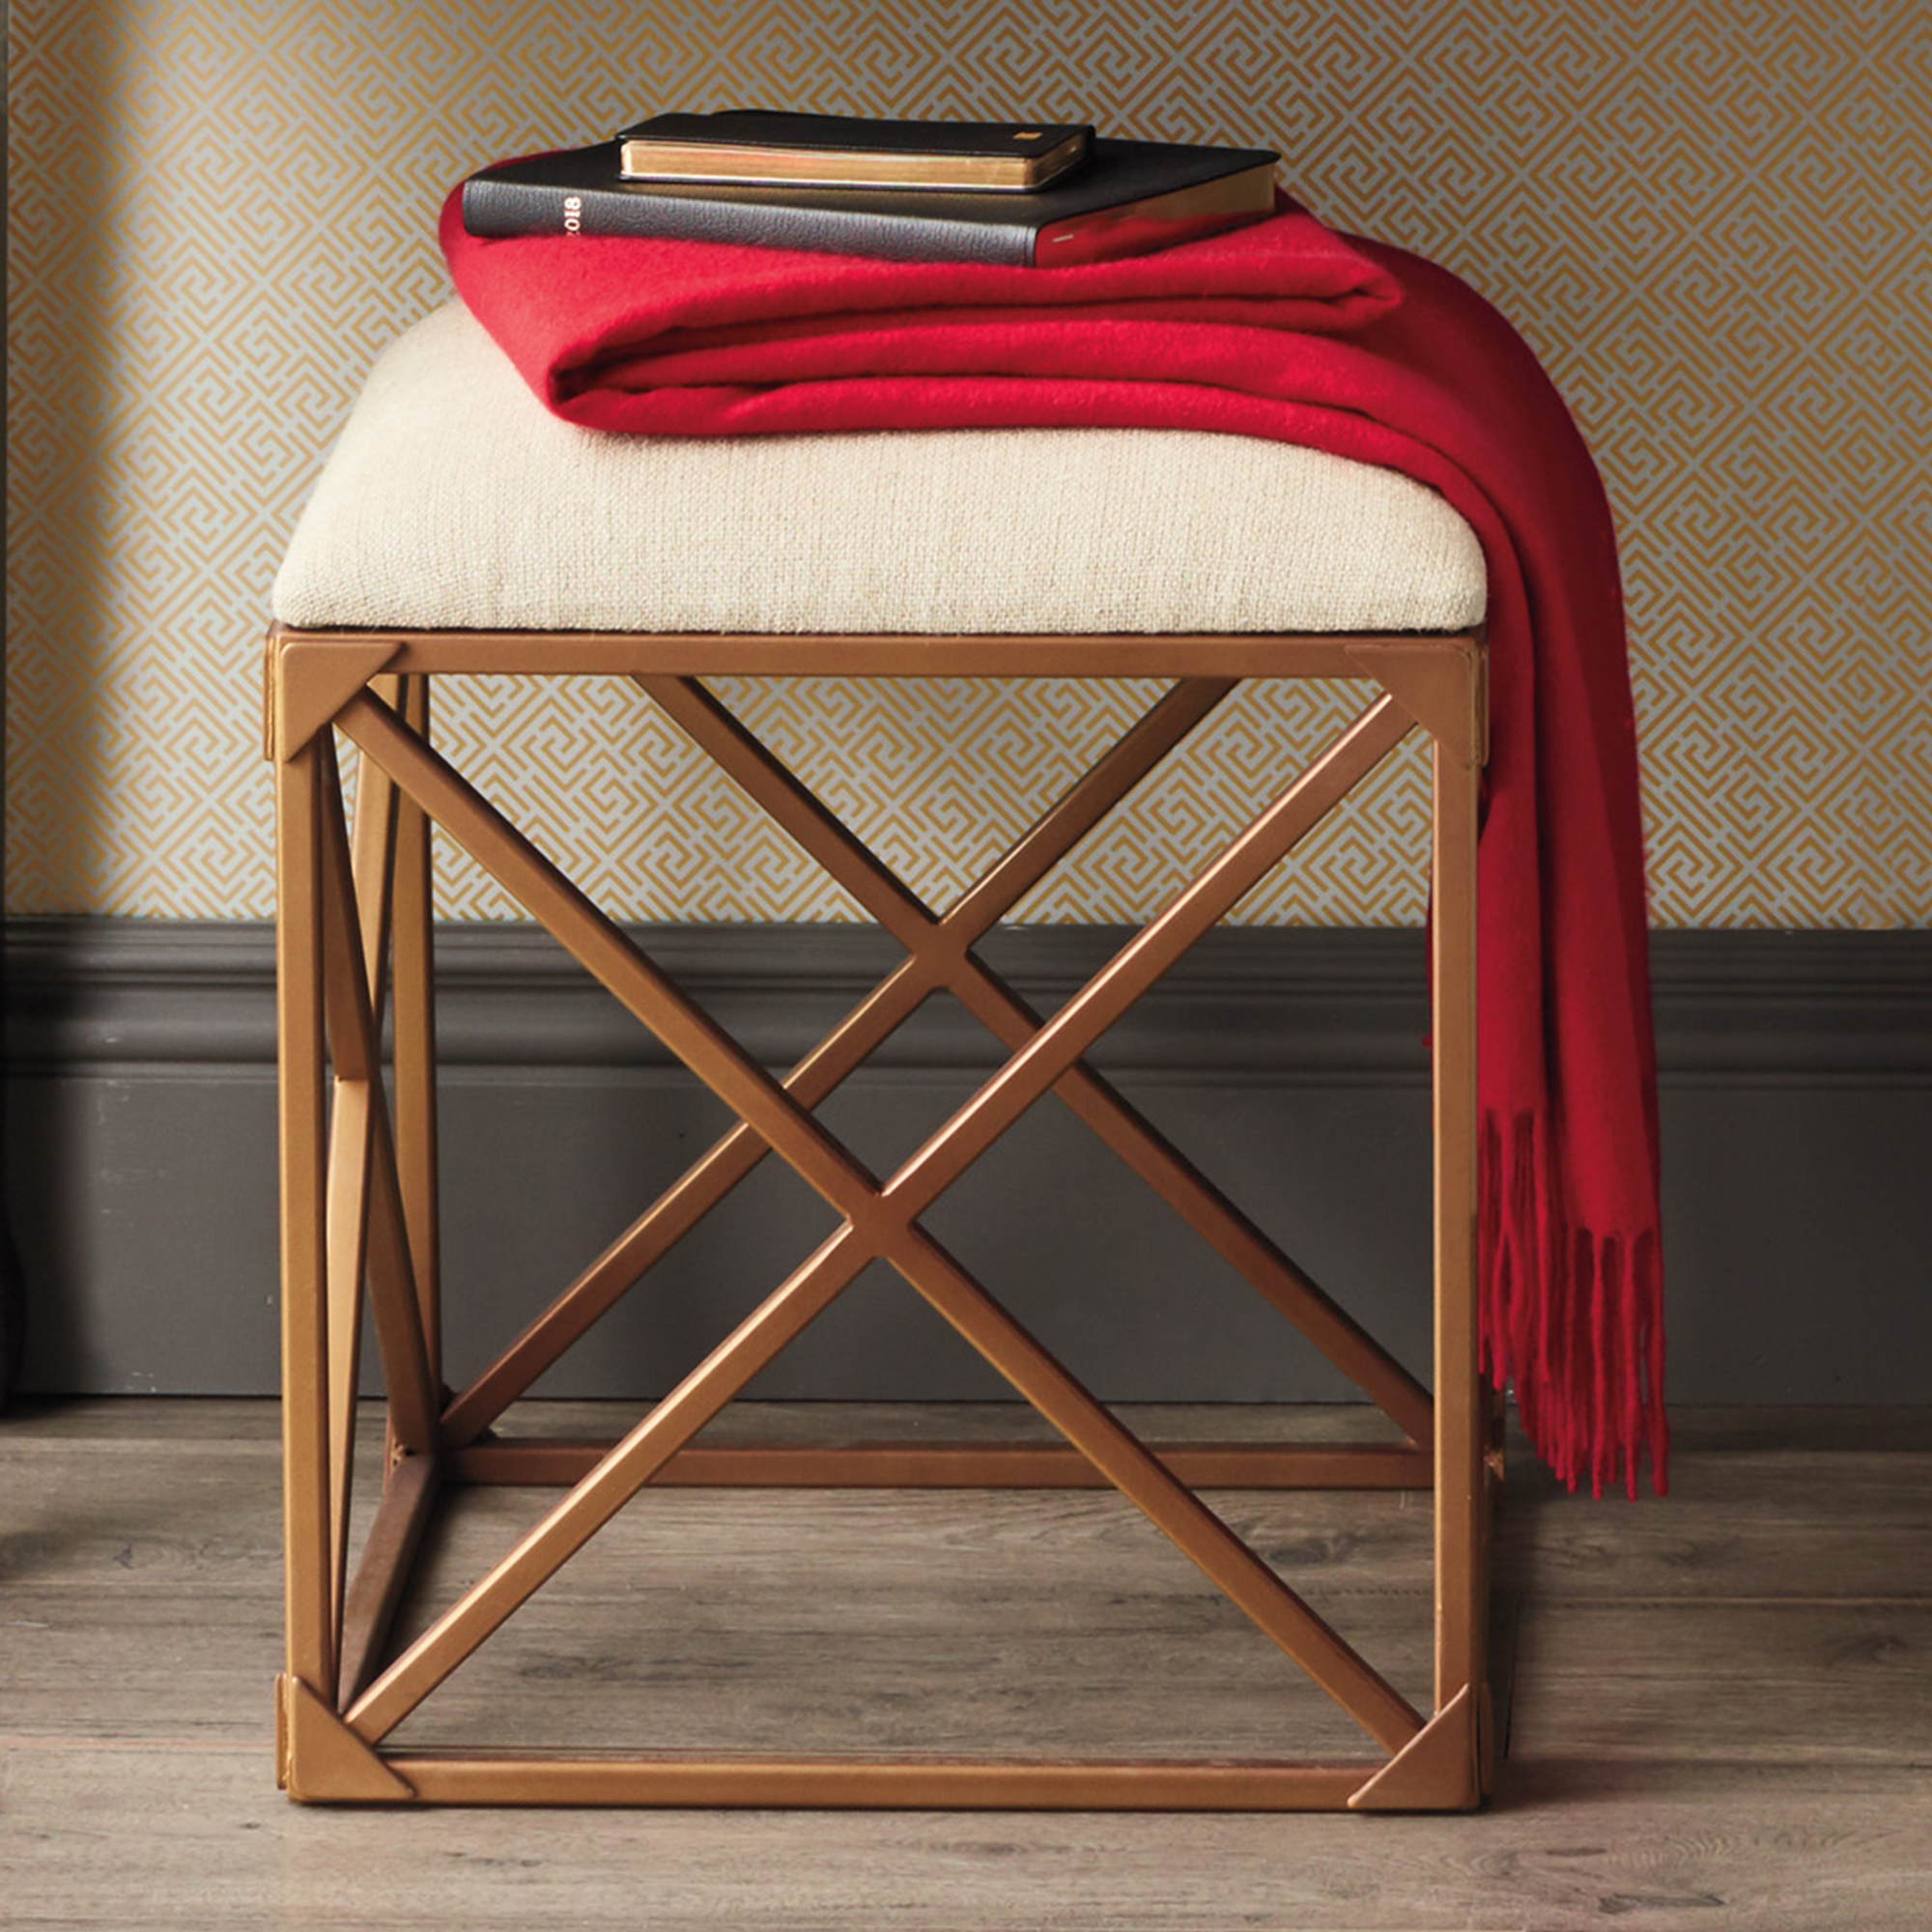 Ryder Upholstered Stool